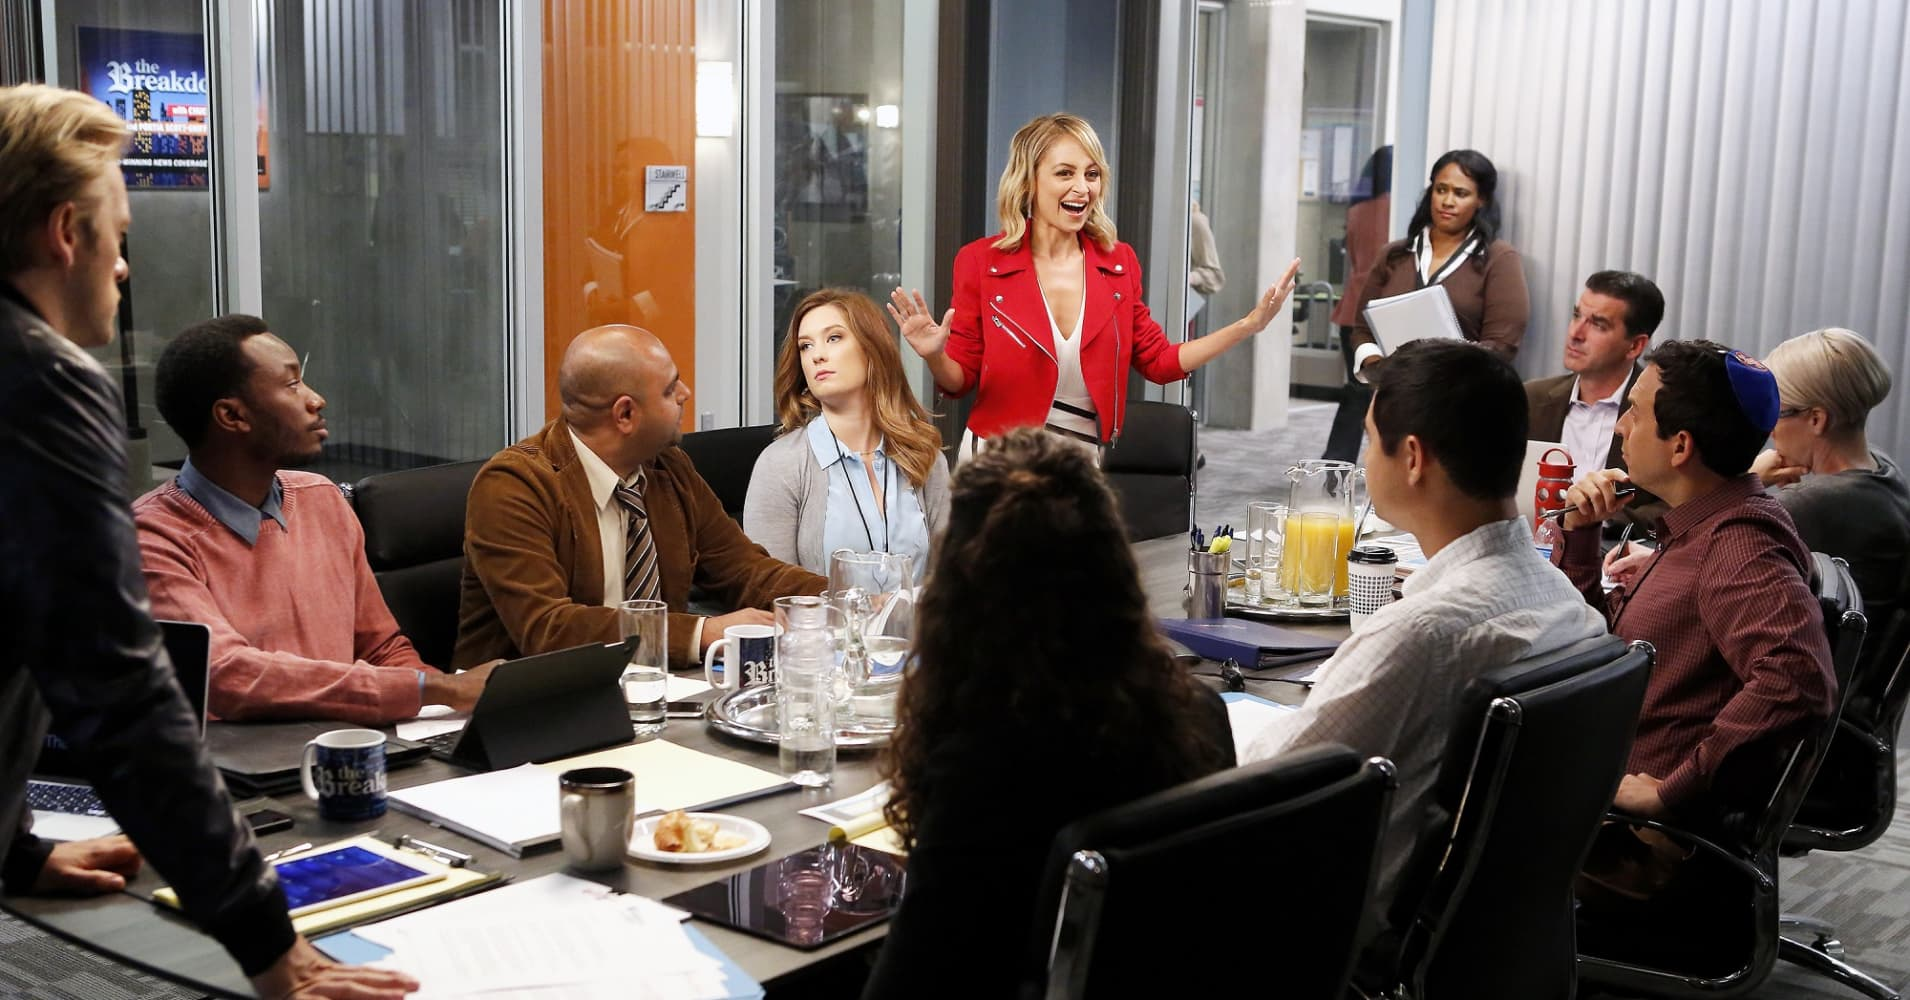 Portia, played by Nicole Richie, shares her idea with her coworkers in an episode of Great News